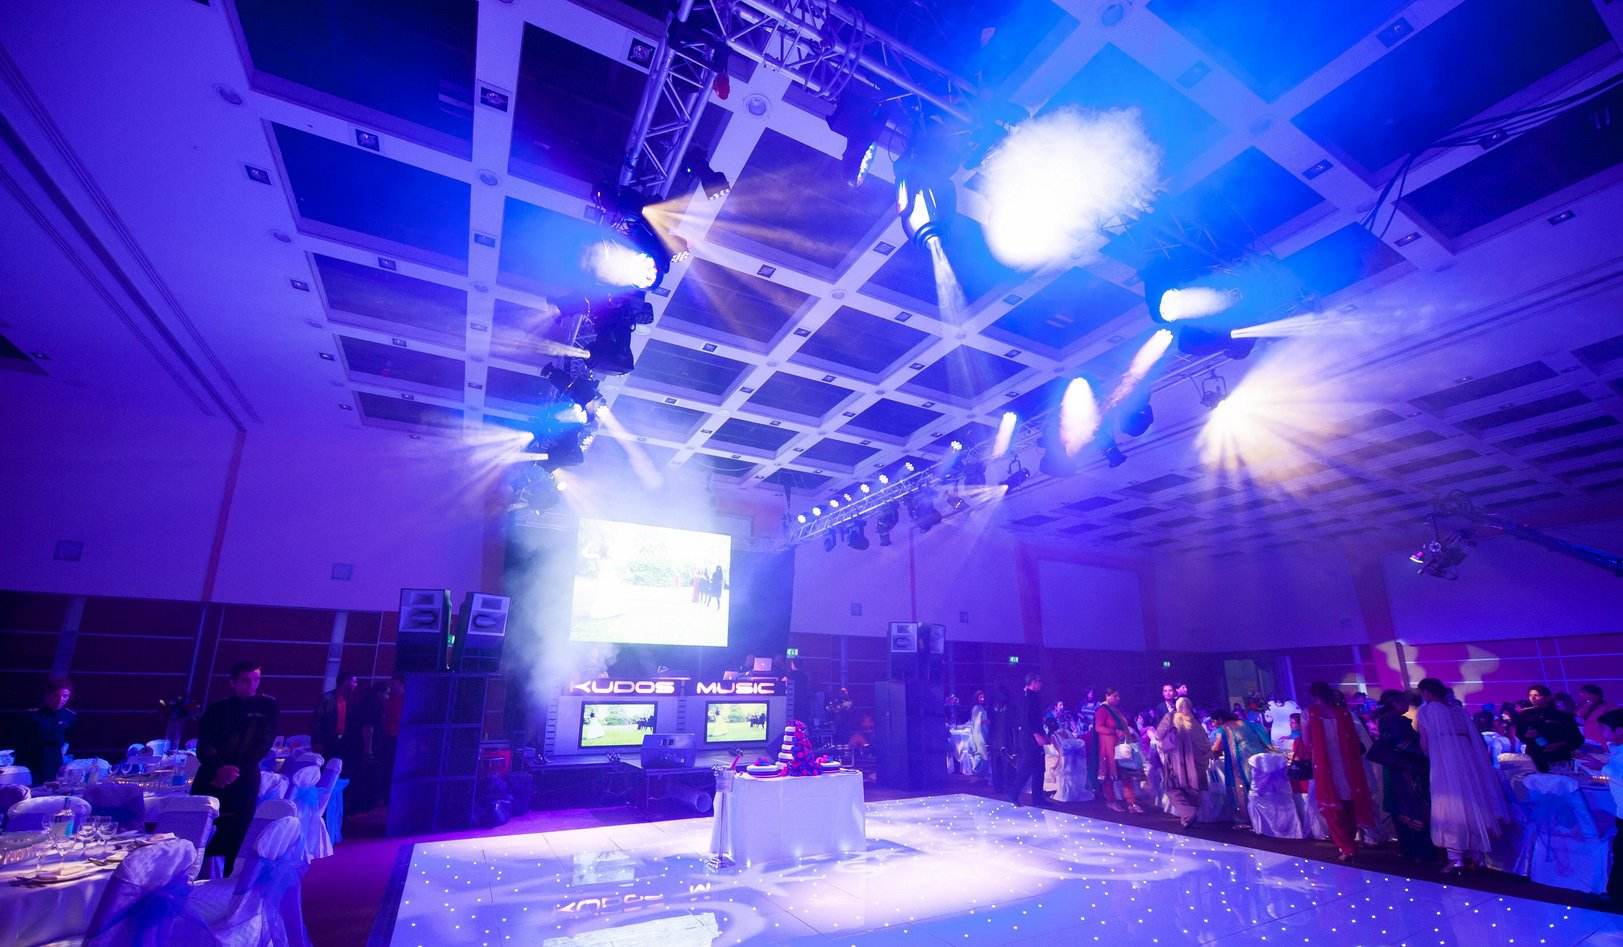 The Wedding of Kavan & Manroop - Entertainment, Cars & Decor by the Kudos Entertainment Team